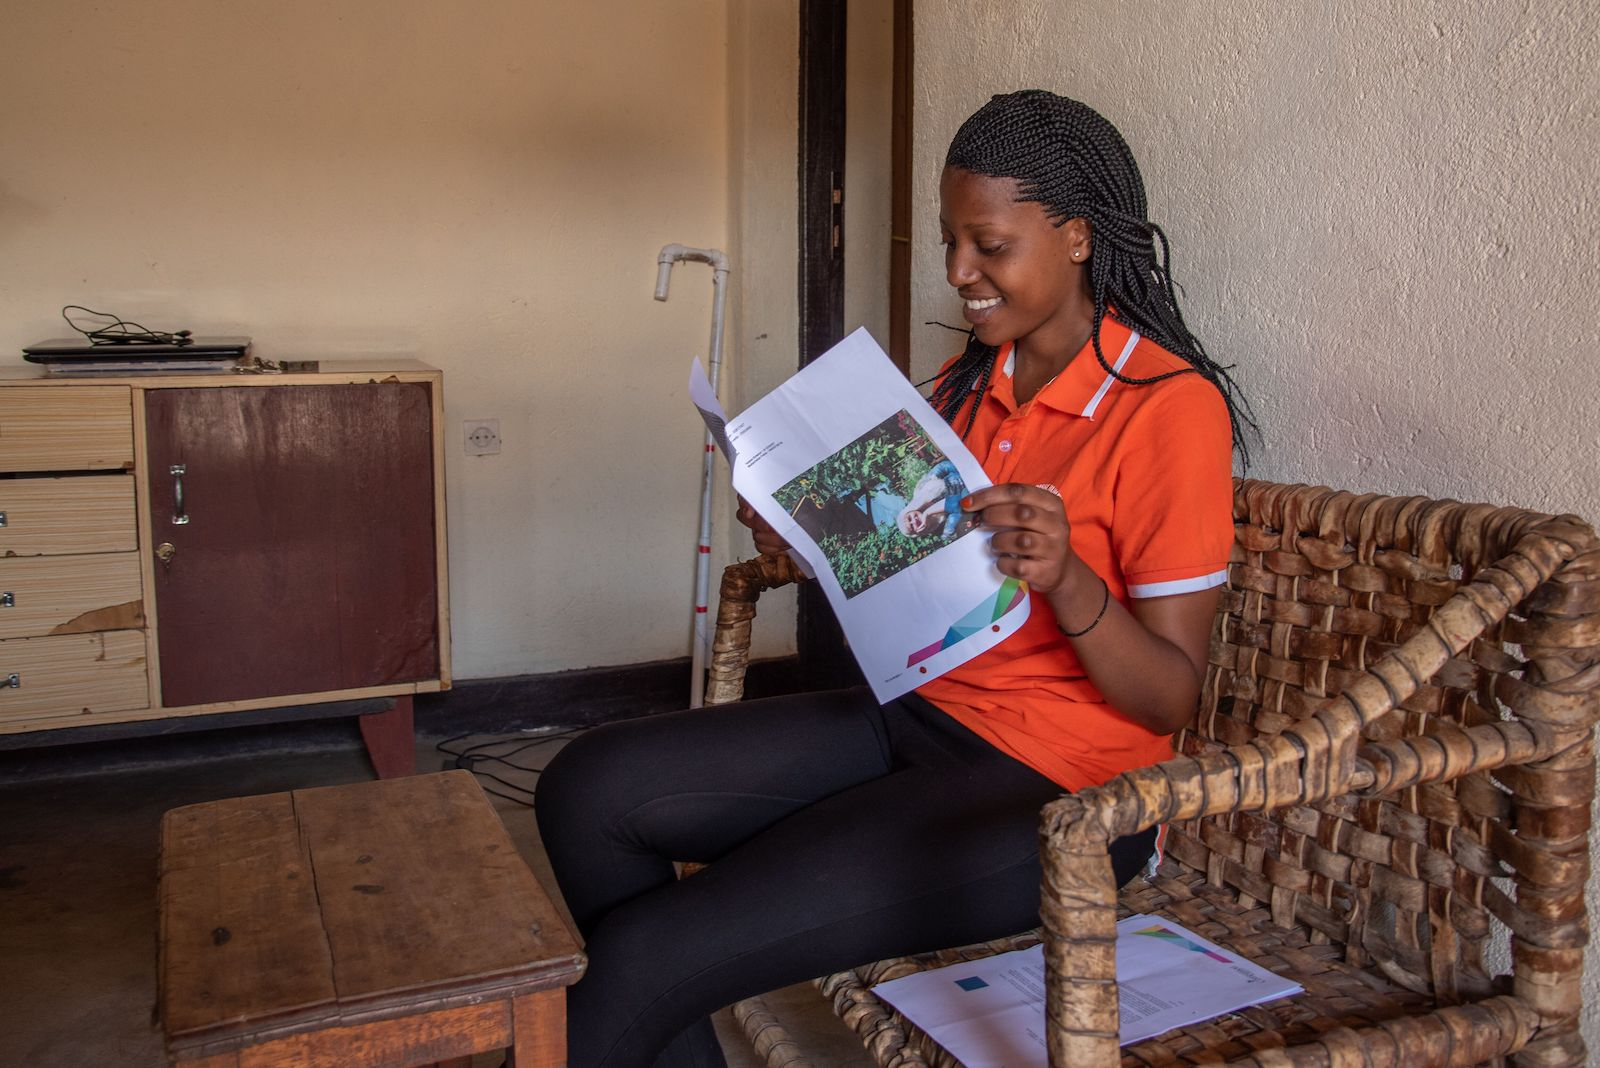 A young woman in an orange shirt sits, reading a letter.